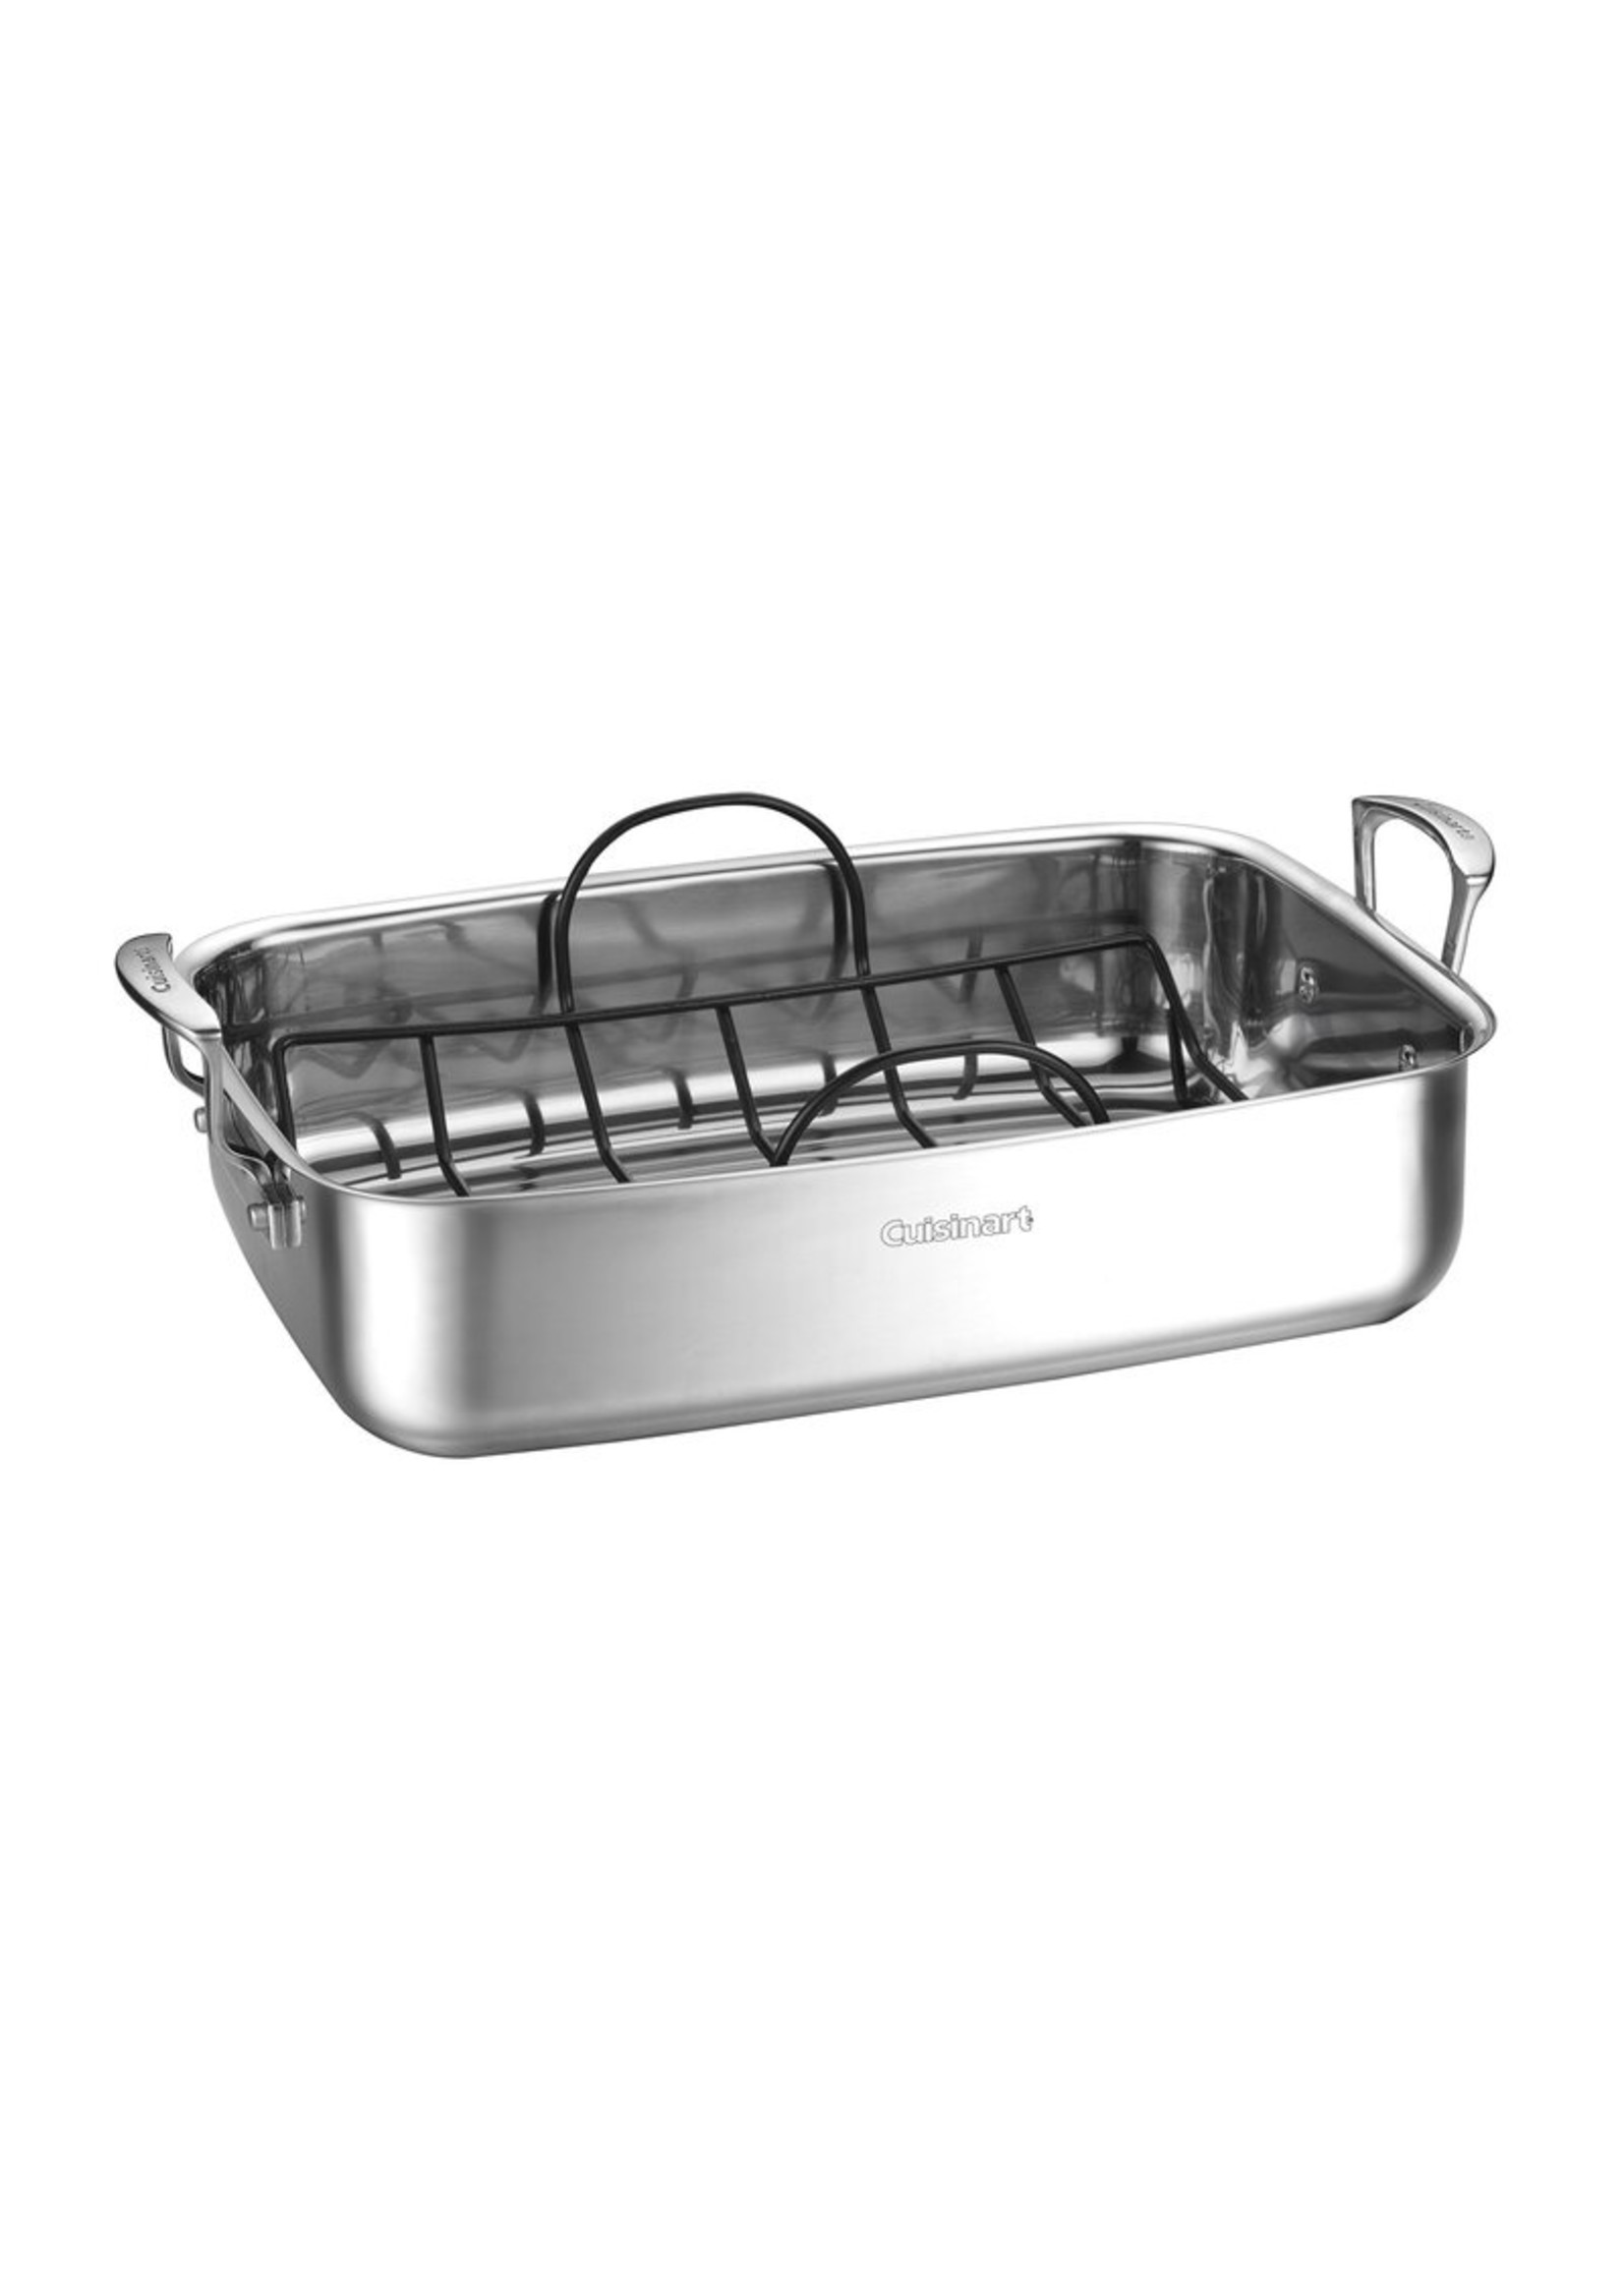 *Cuisinart 15 in. Non-Stick Stainless Steel Roasting Pan